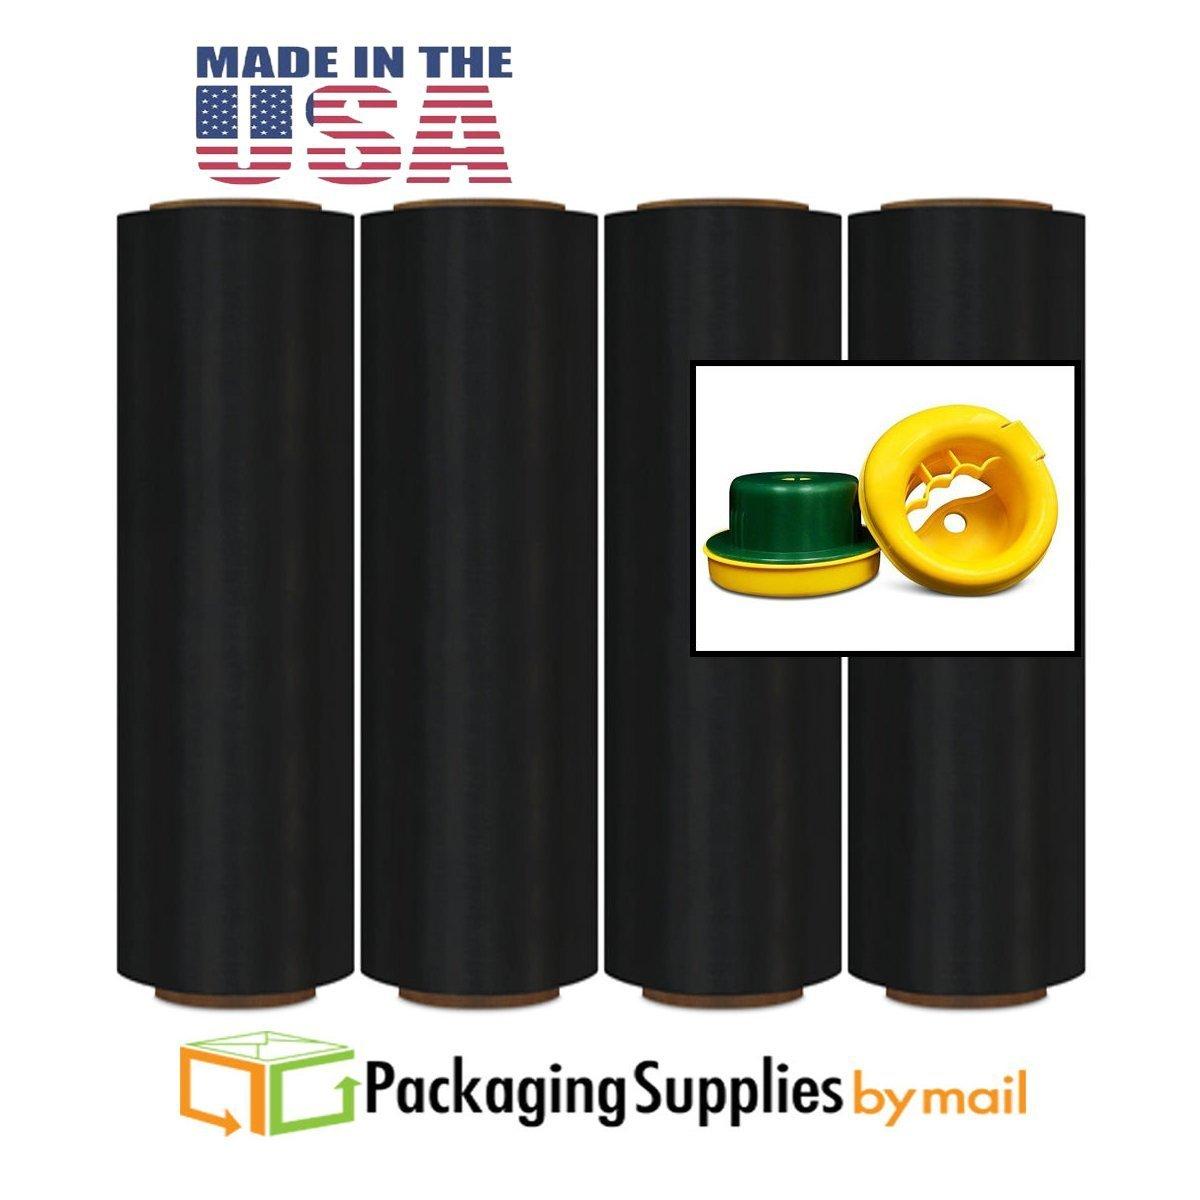 Black Color Stretch Wrap Film Advanced Pre-Stretch w/ Folded Edges 17'' x 1476' 8.5 Micron 4 Rolls with Dispenser